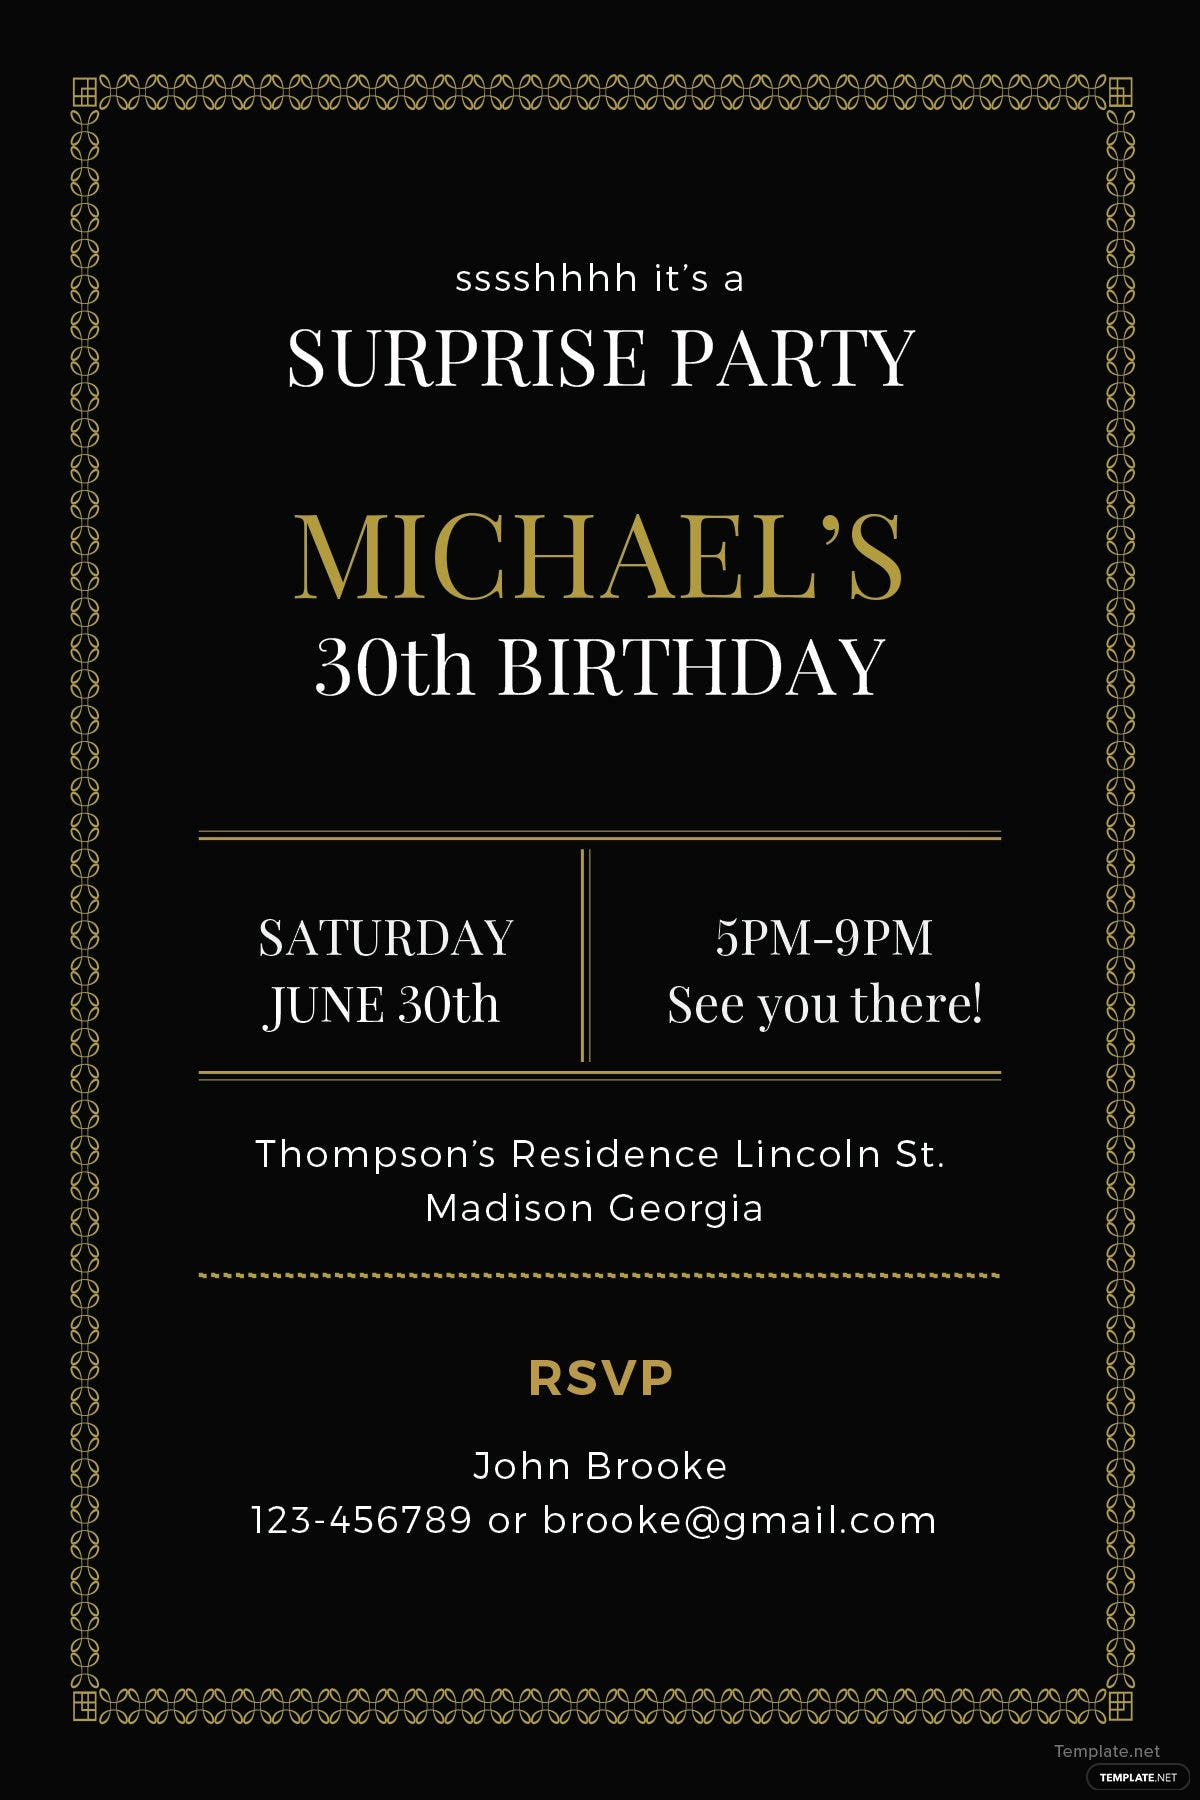 how to design and print surprise party invitations 9 steps